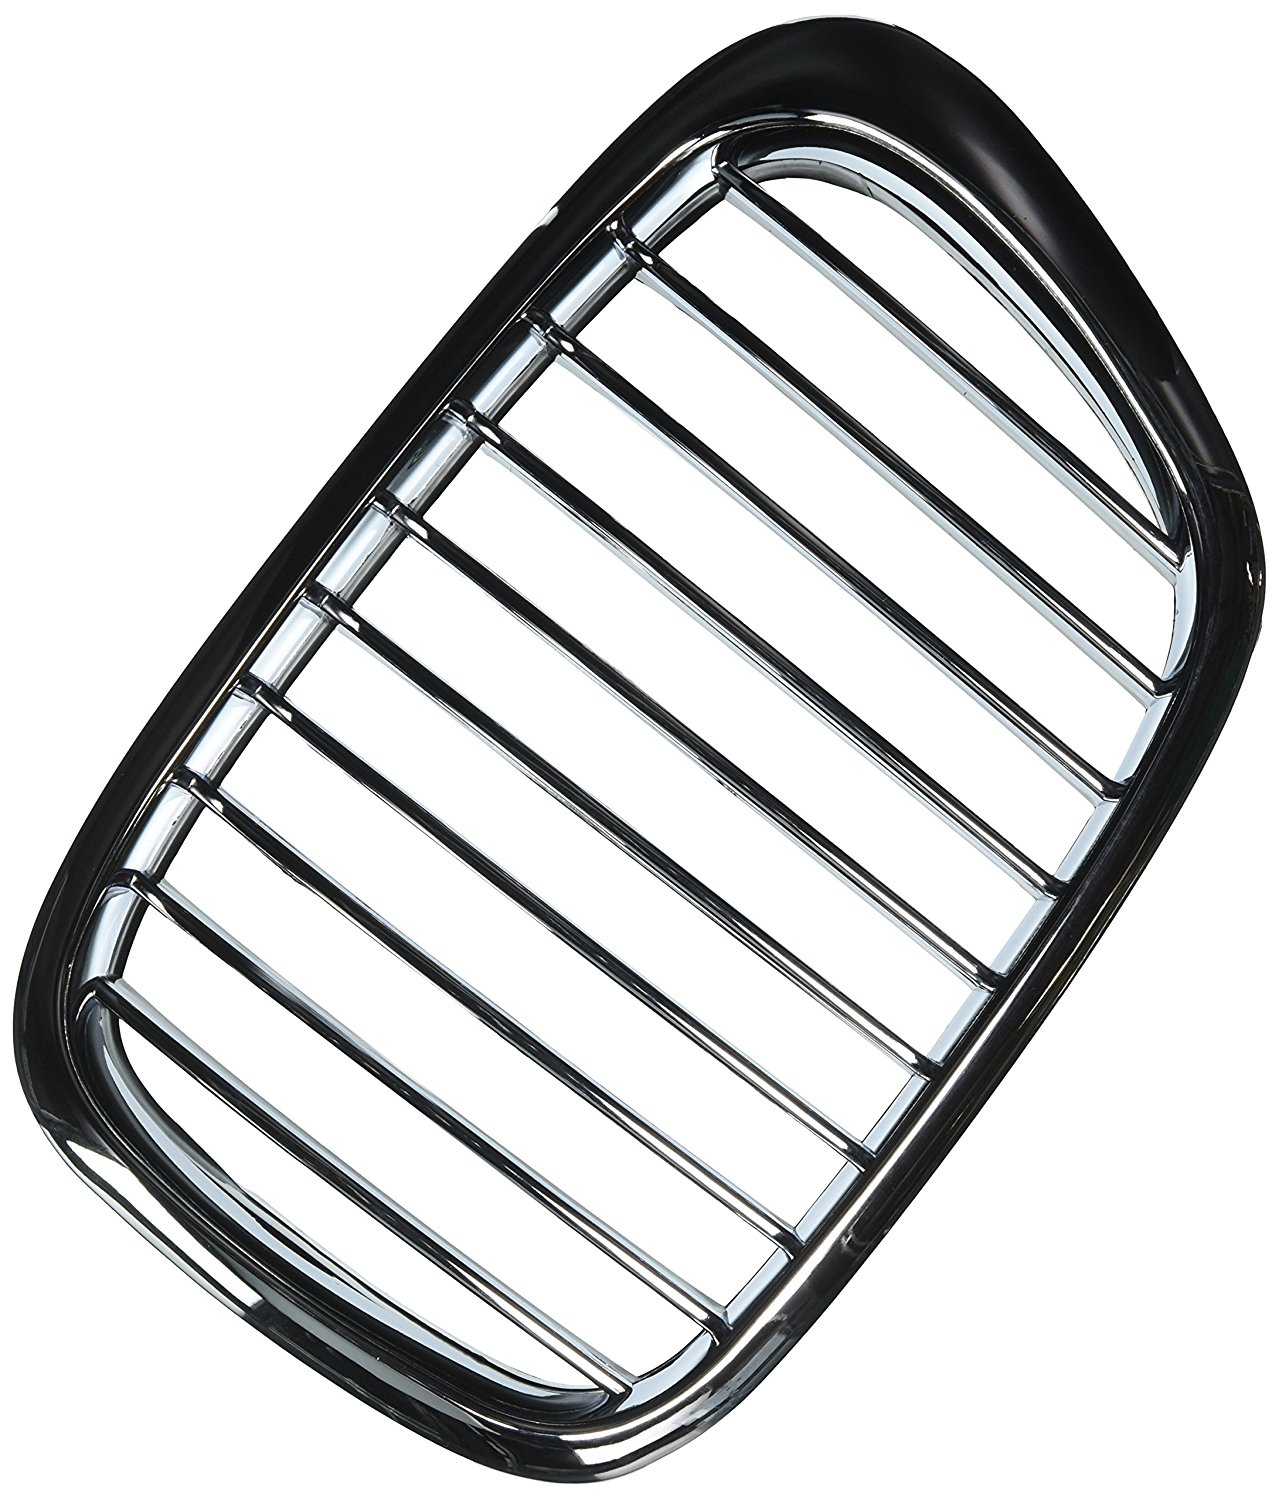 OE Replacement BMW 540 Driver Side Grille Assembly (Partslink Number BM1200136)